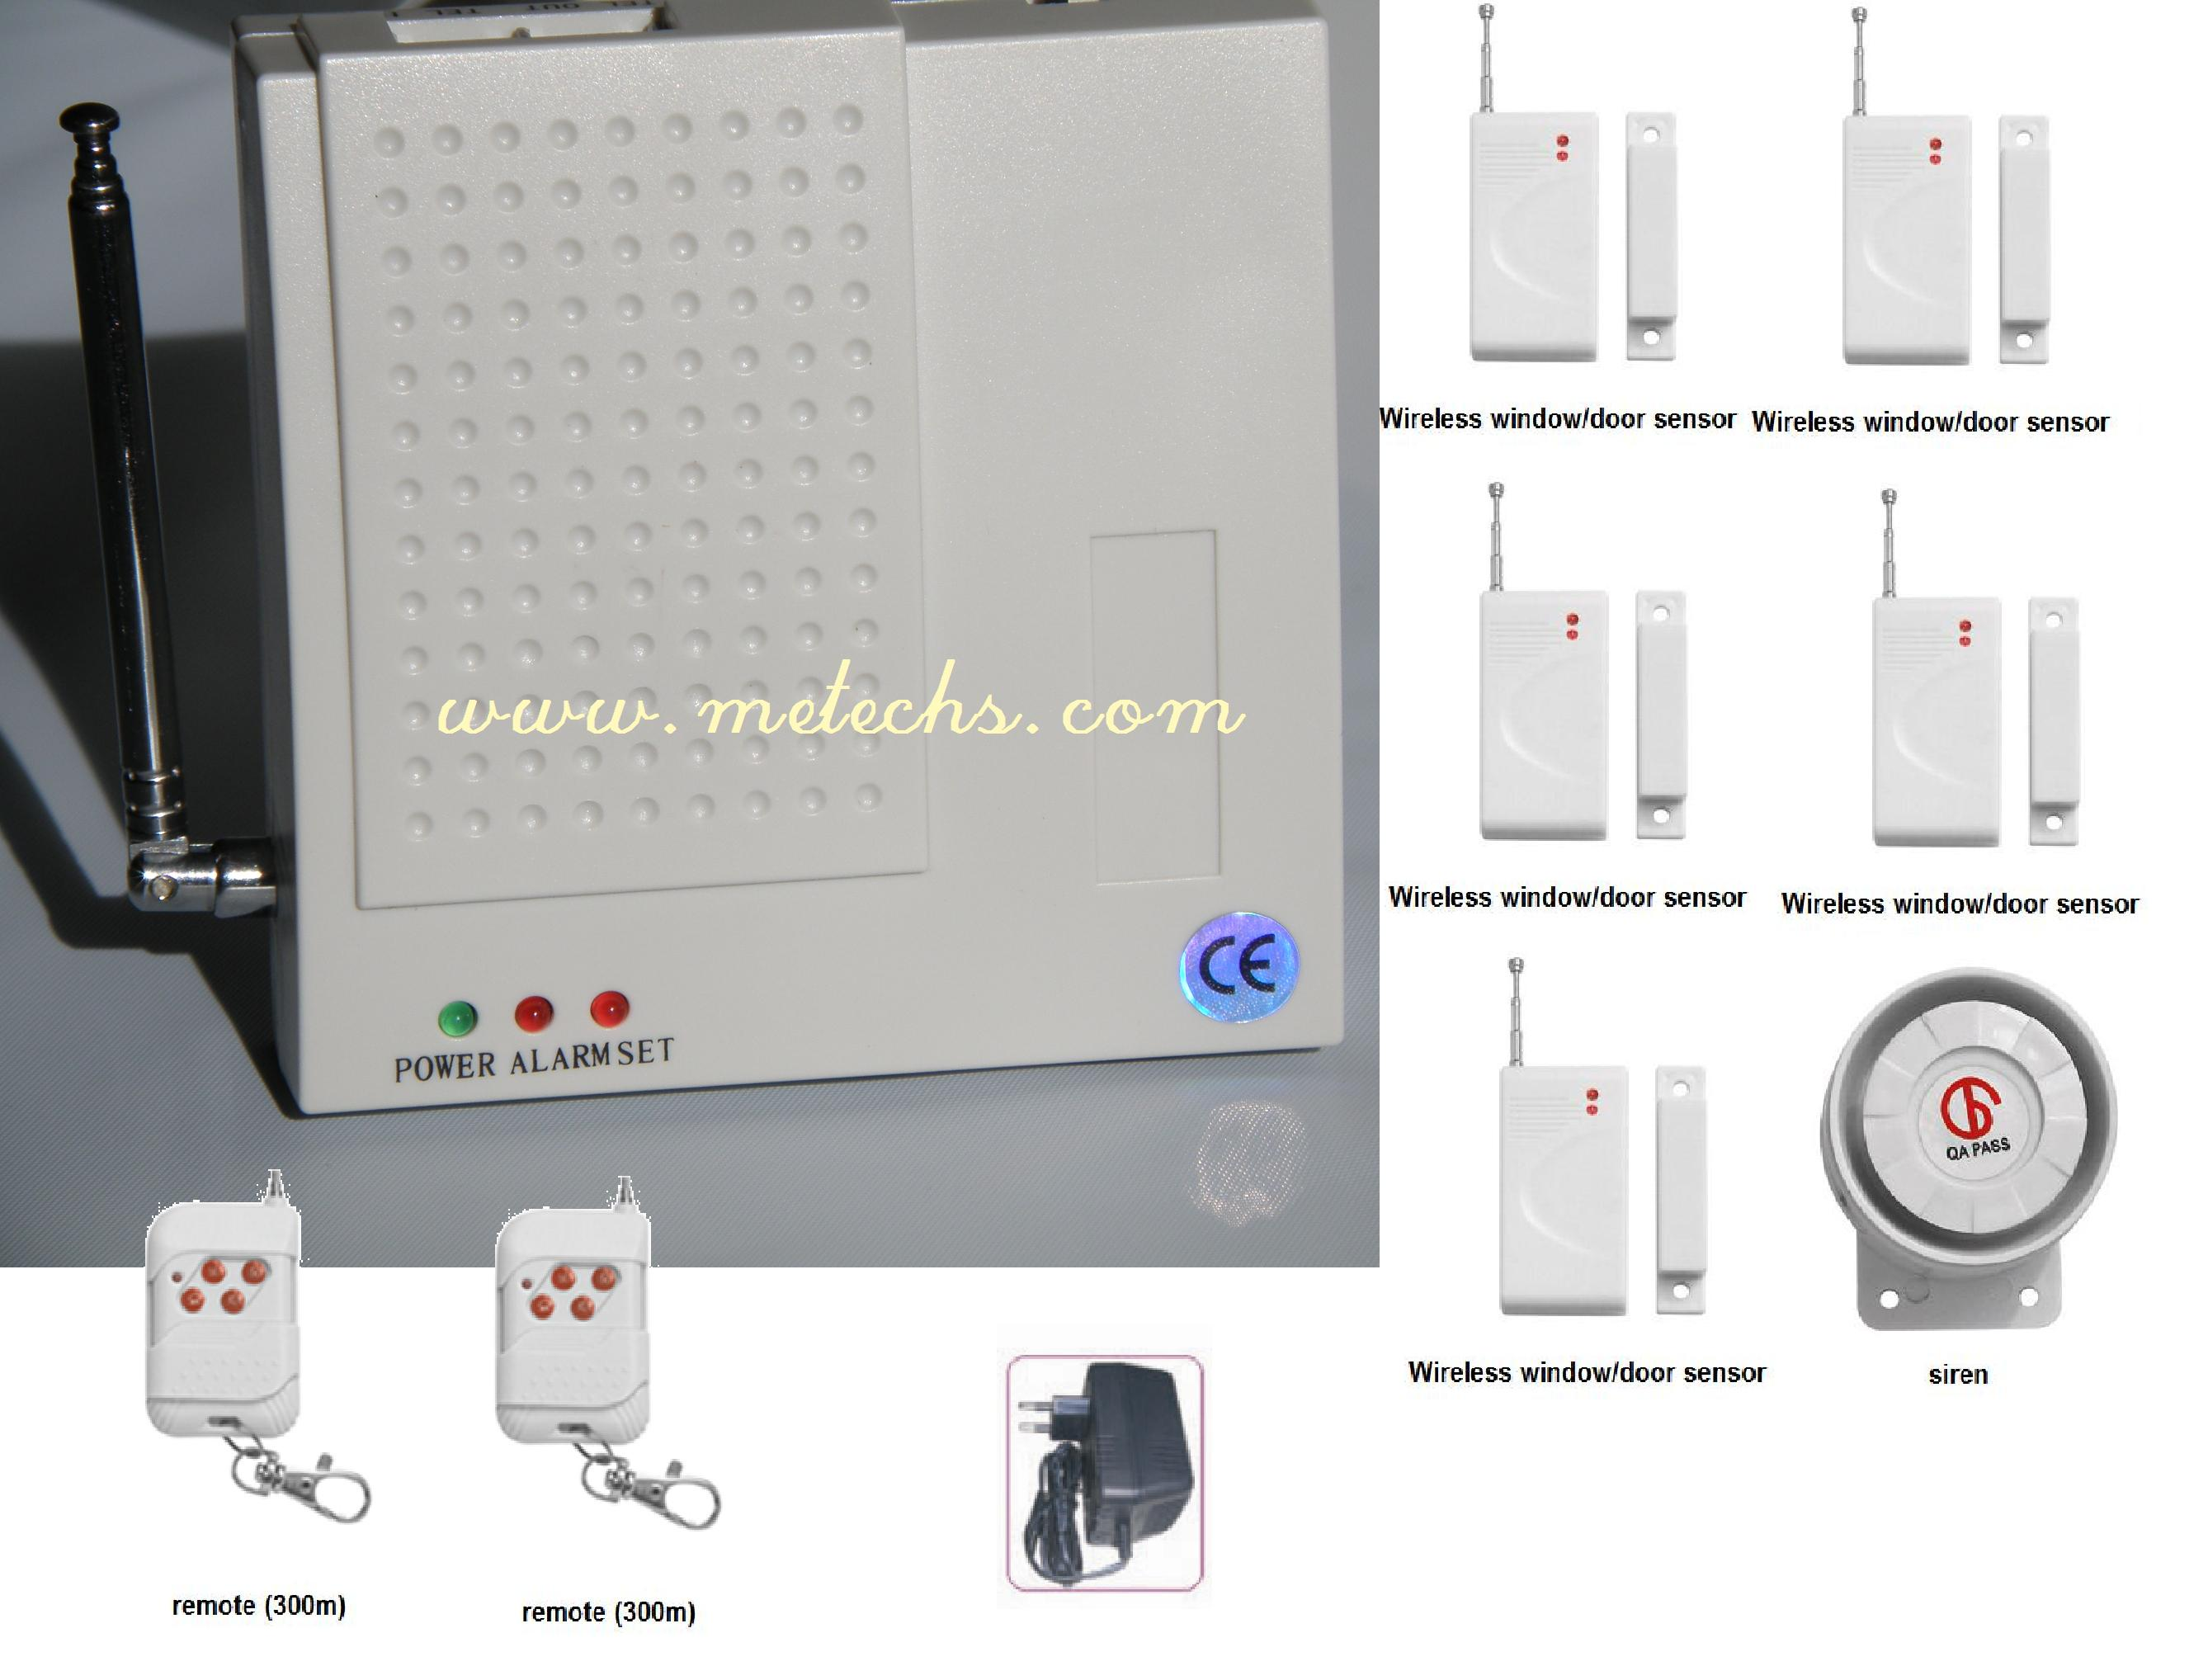 Remote Wall Controller For CL800's Tubular Electric Motor